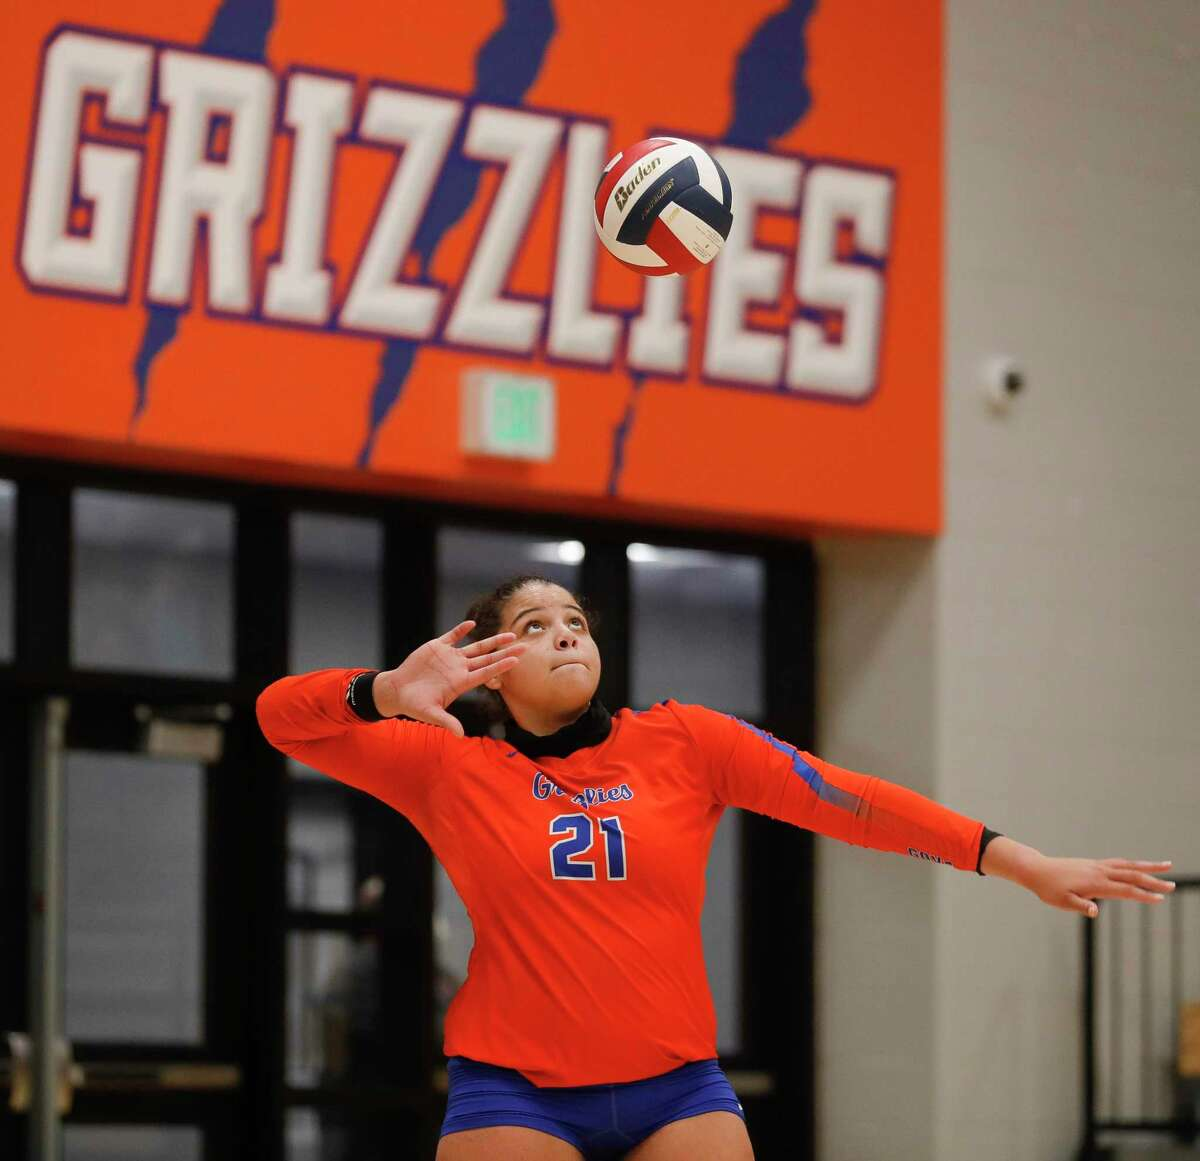 Grand Oaks outside hitter Fallon Thompson (21) serves the ball during the fifth set of a District 13-6A high school volleyball match at Grand Oaks High School, Tuesday, Oct. 20, 2020, in Spring.